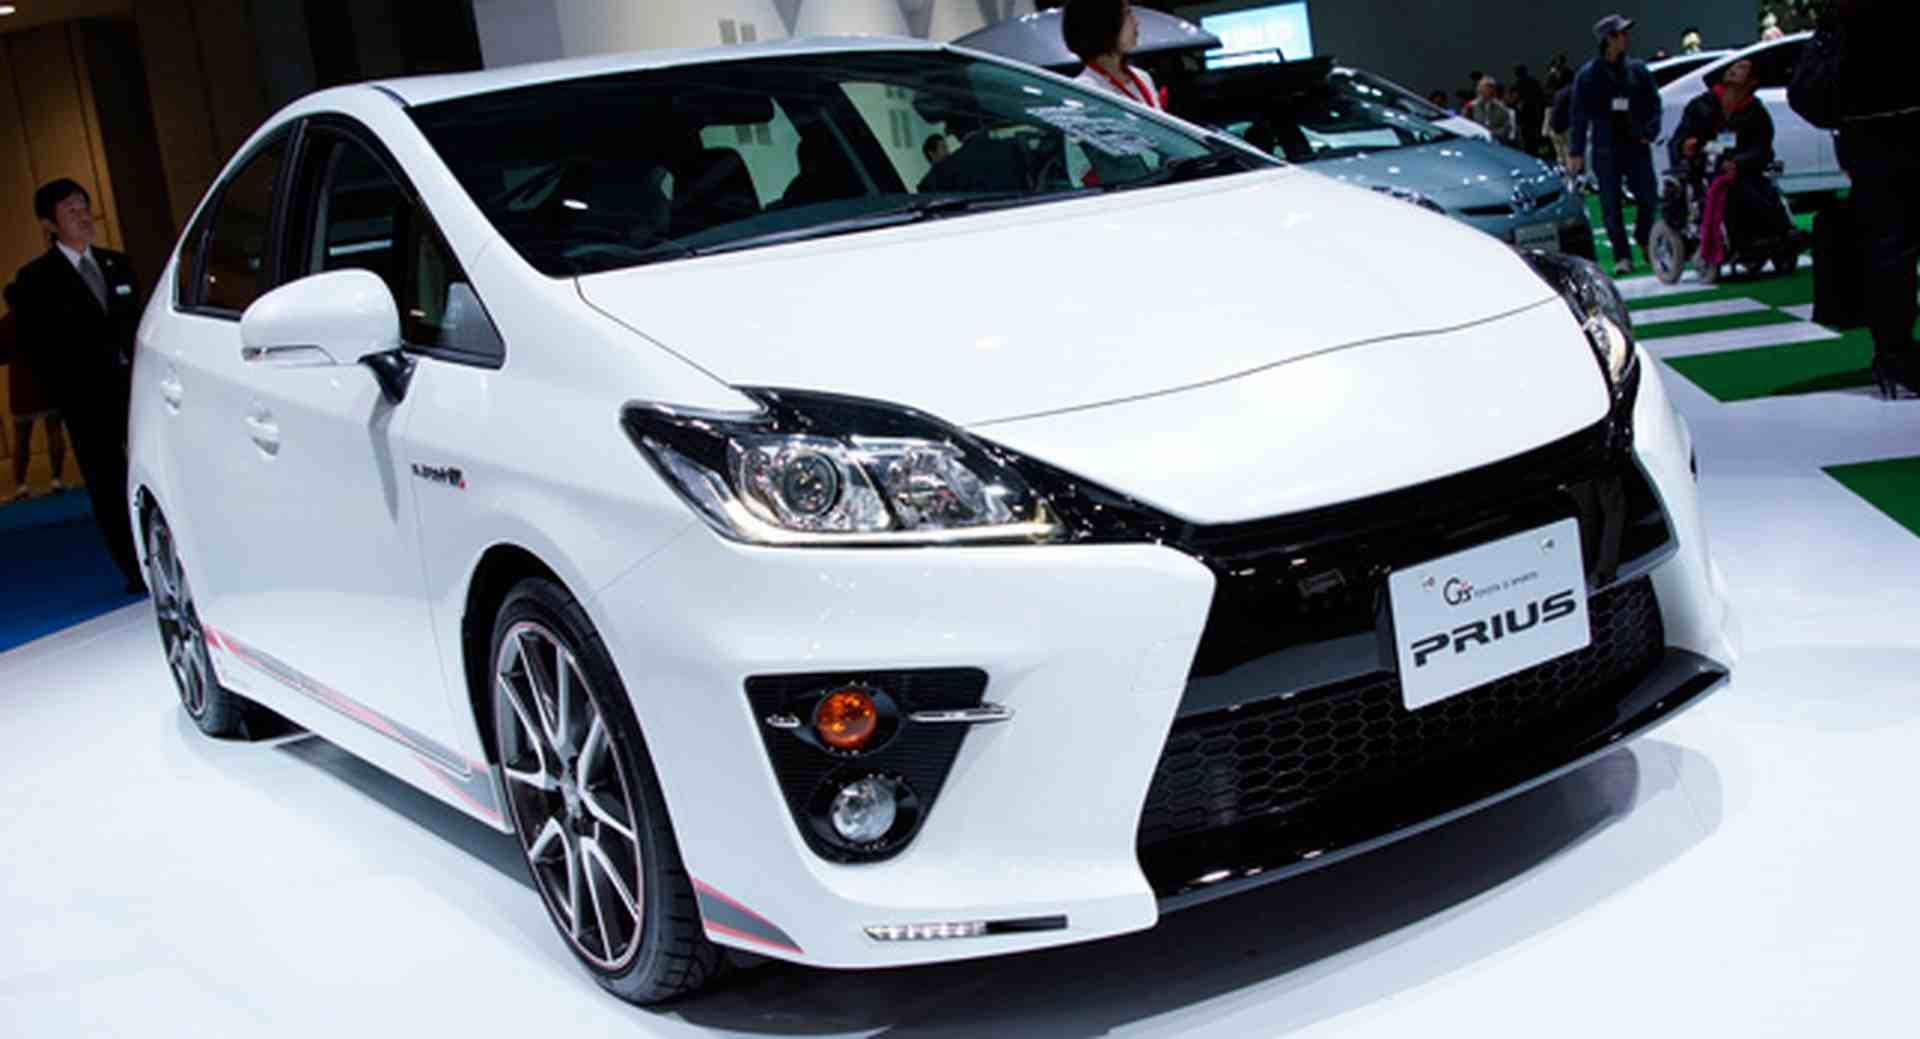 new car 2016 toyota2016 Toyota Prius Design One of the most popular hybrid cars from